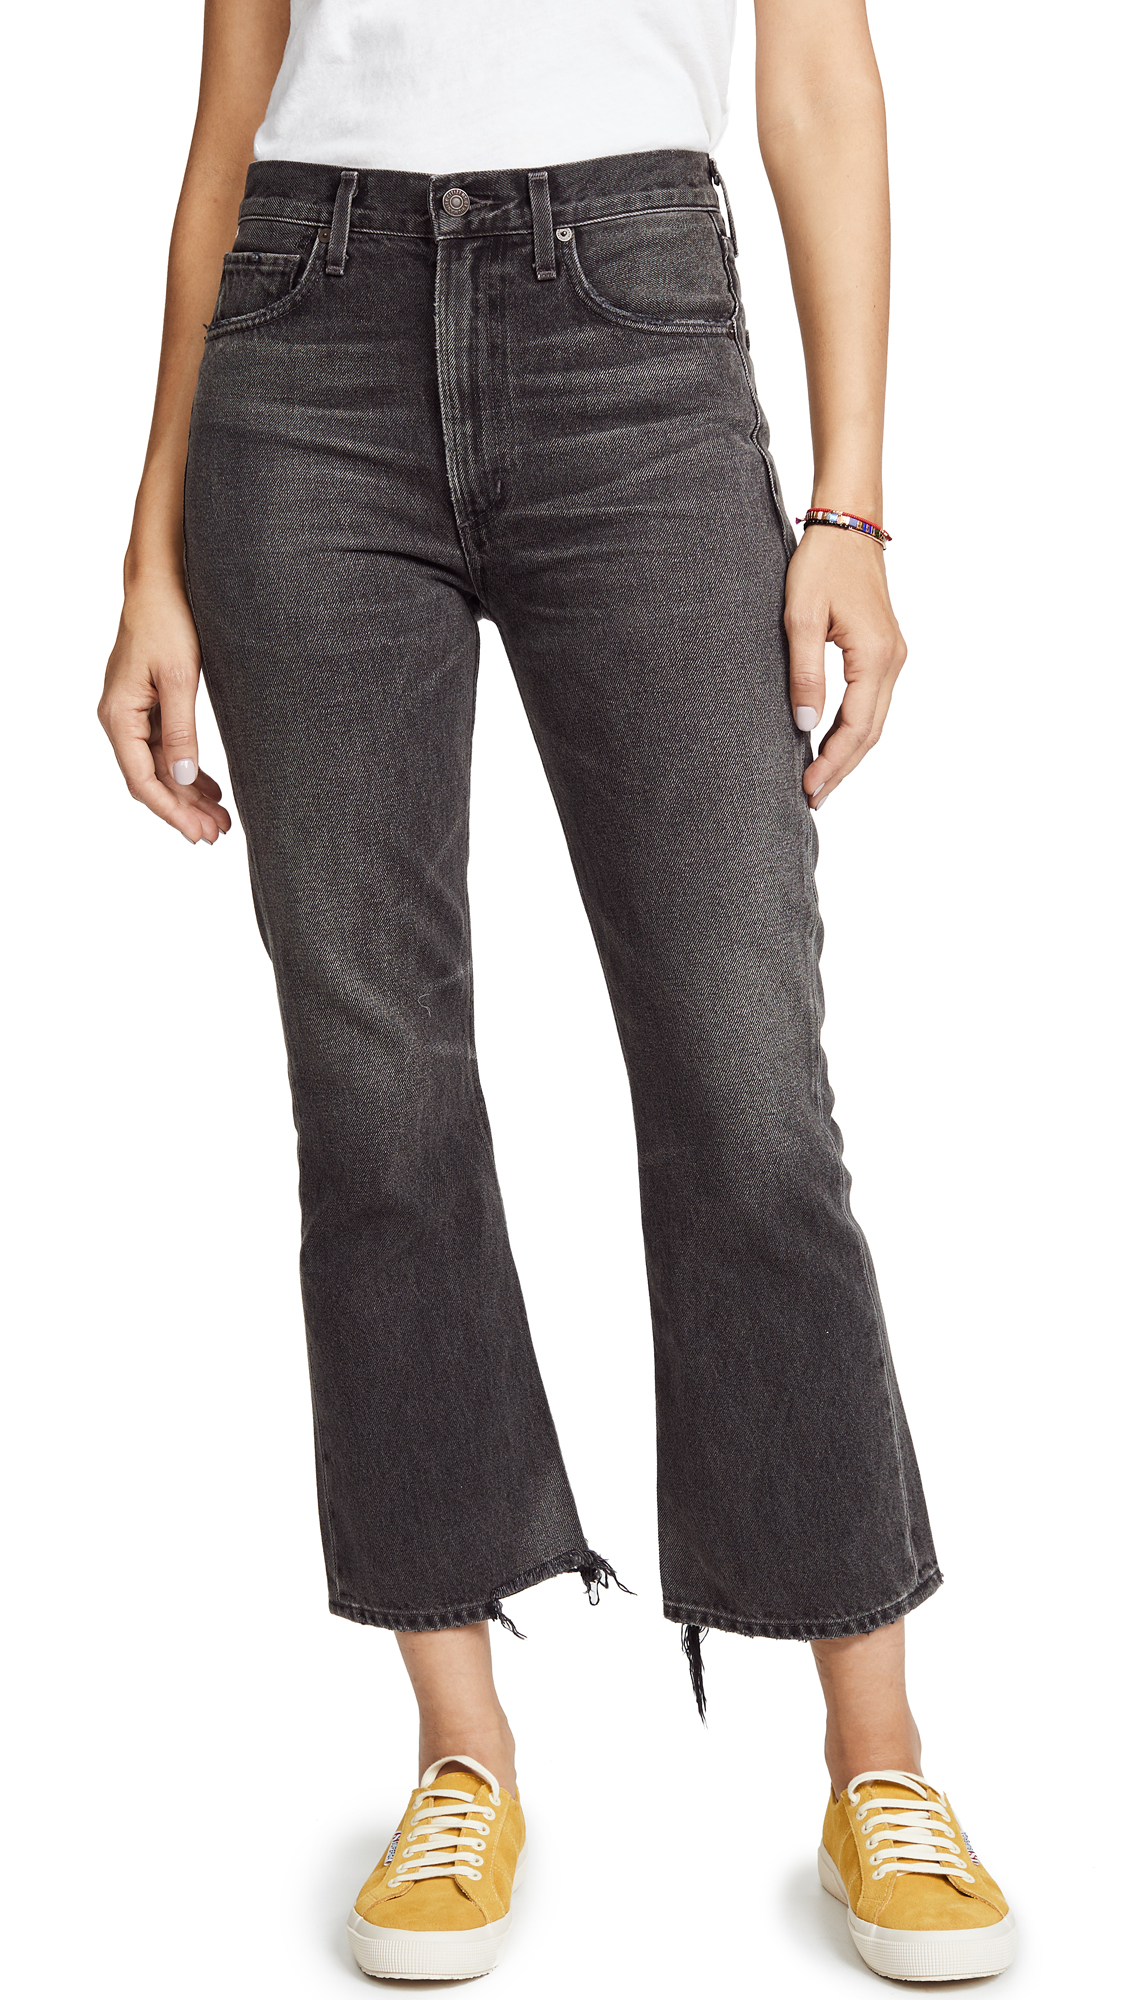 Citizens of Humanity Estella High Rise Ankle Flare Jeans